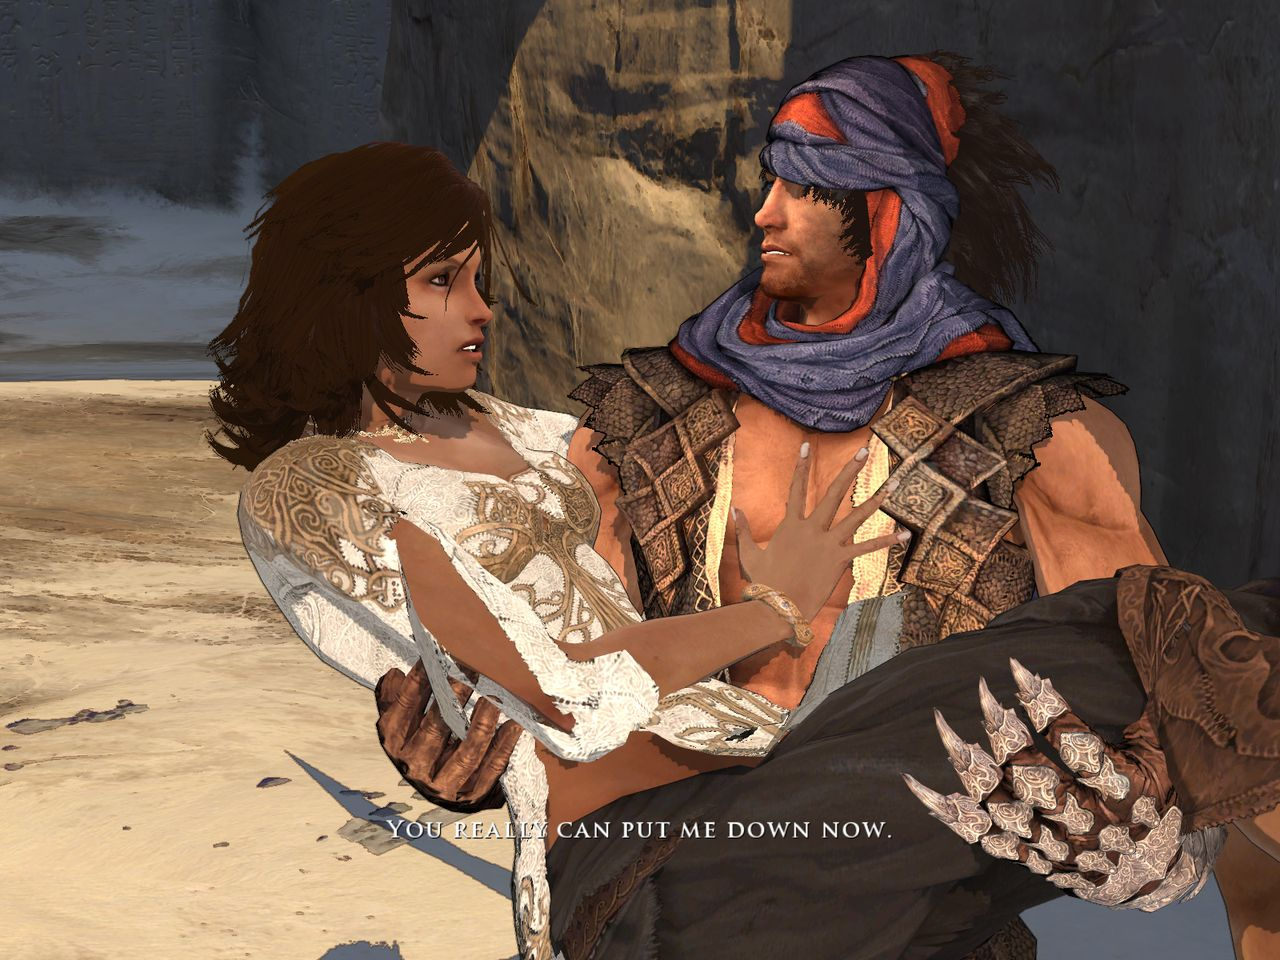 Prince of persia how find elika hentai pictures